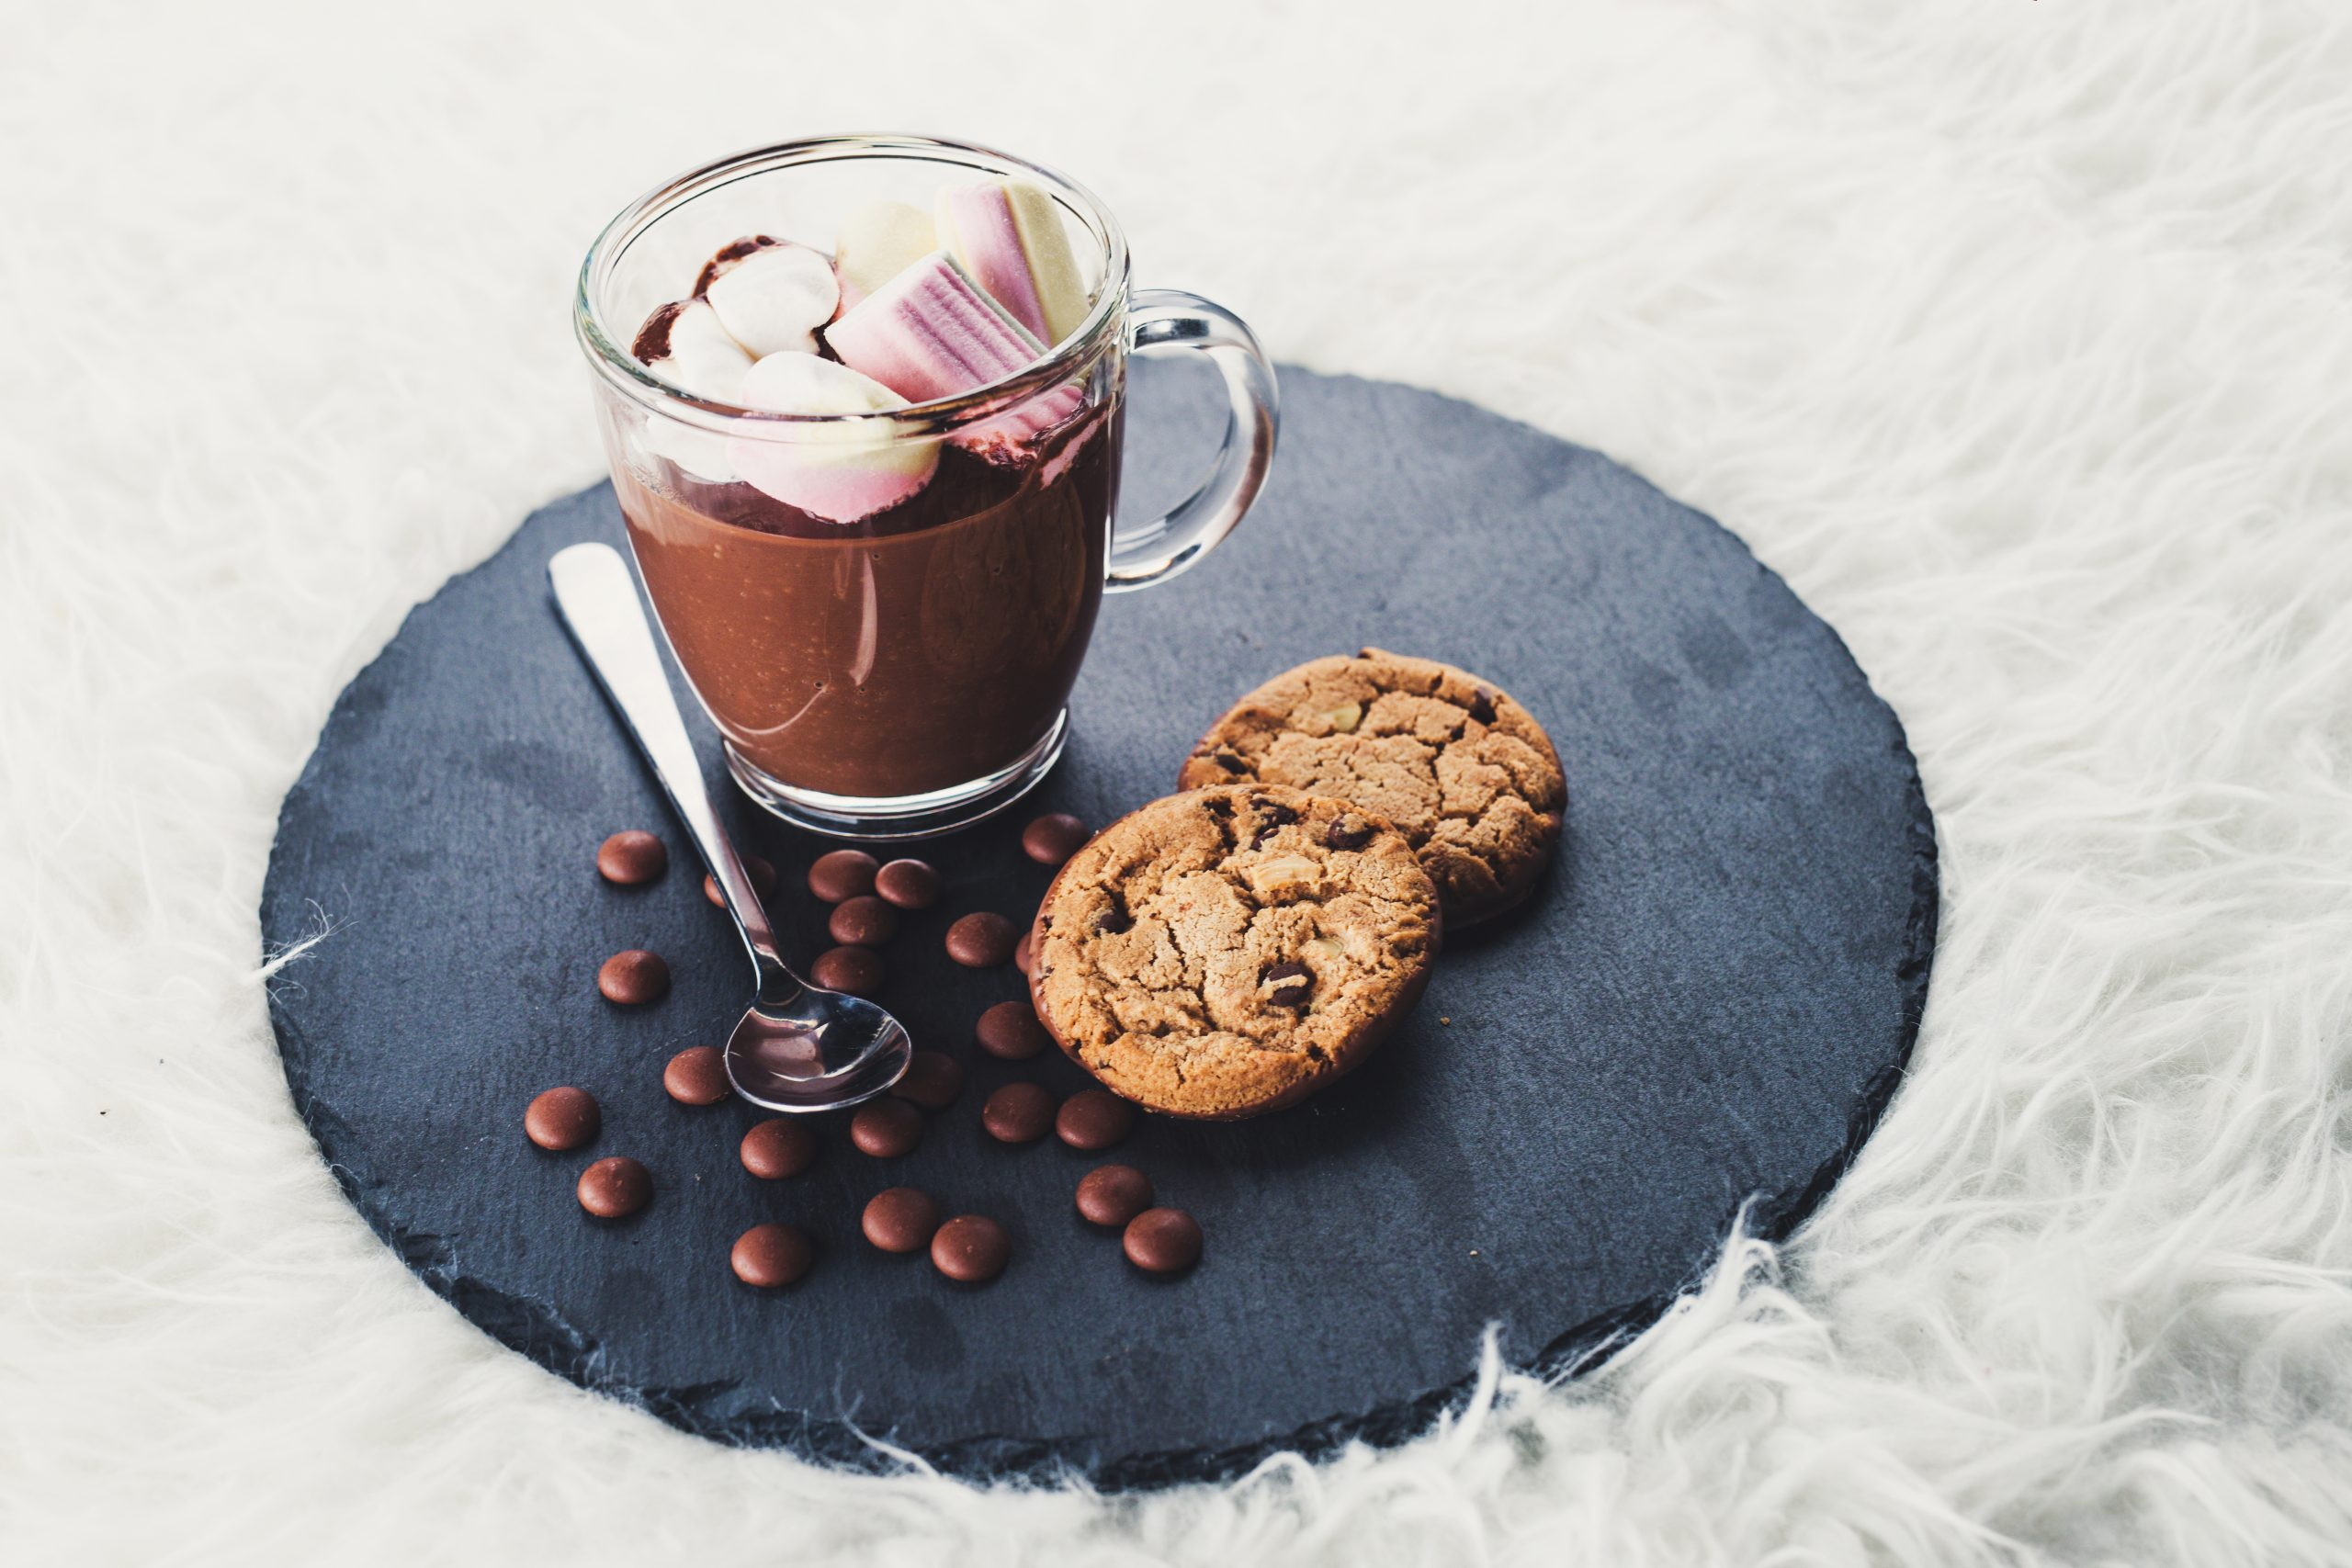 5 Variations of Hot Chocolate You've Got to Try